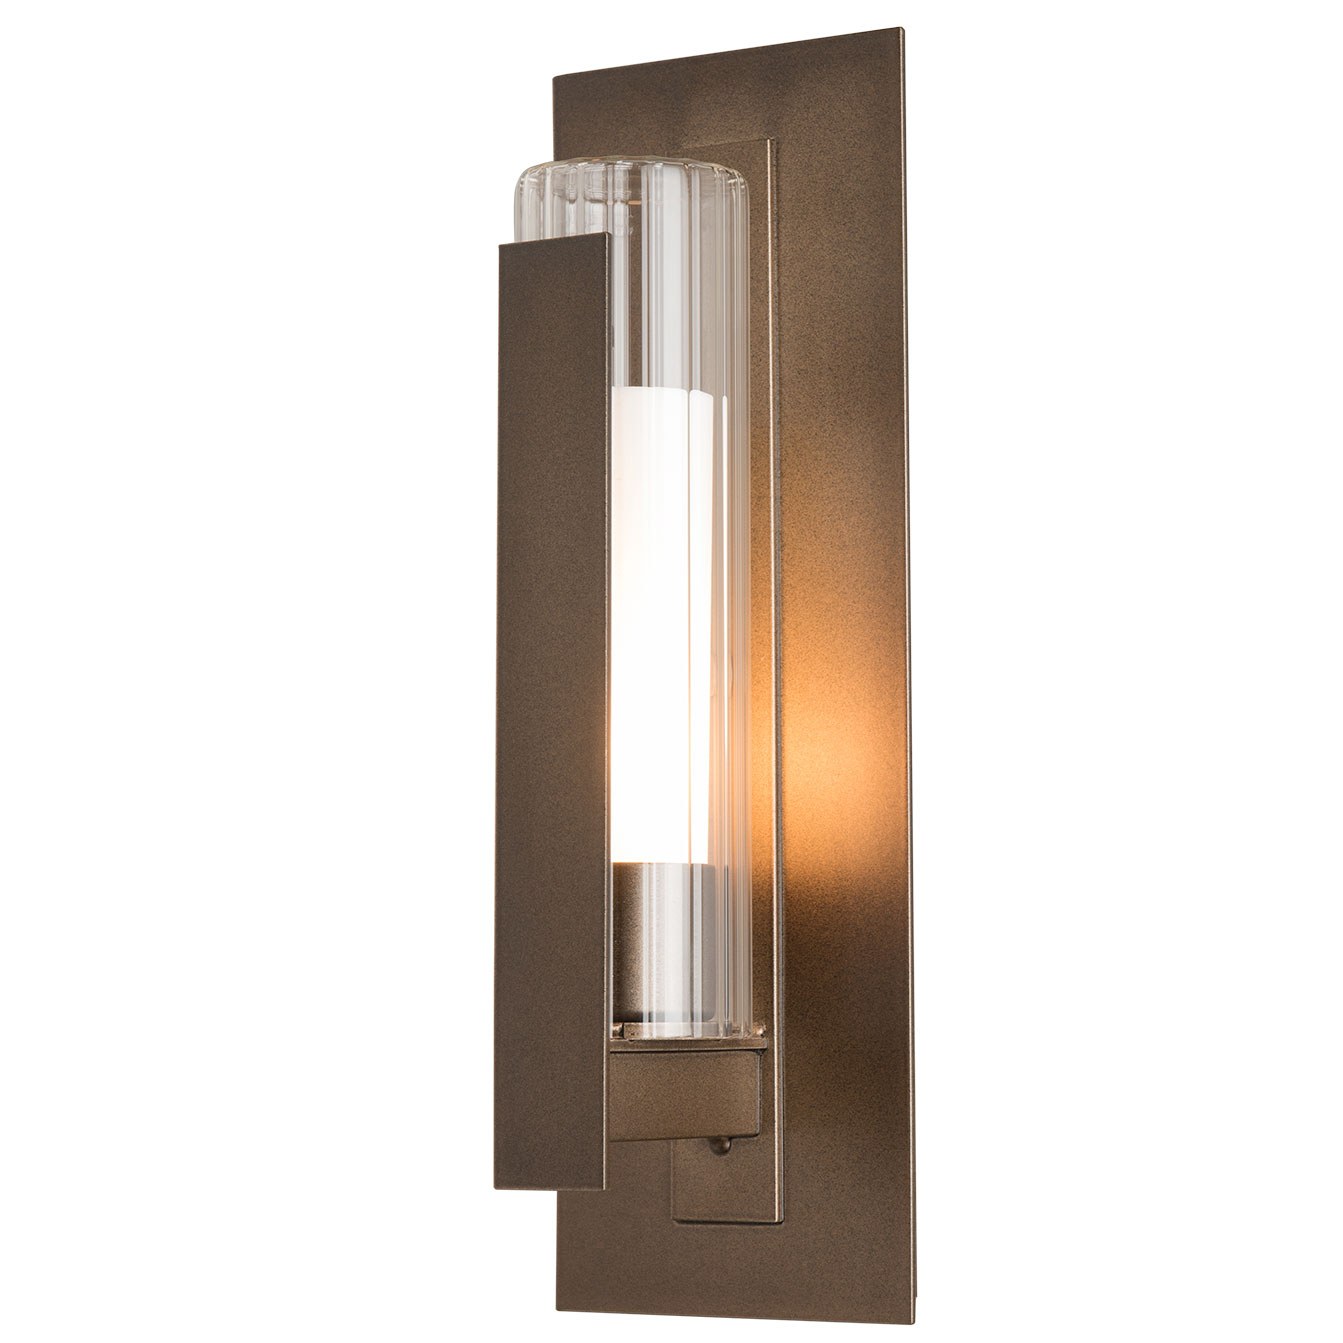 Vertical Bar Fluted Outdoor Wall Sconce By Hubbardton Forge 307281 1004